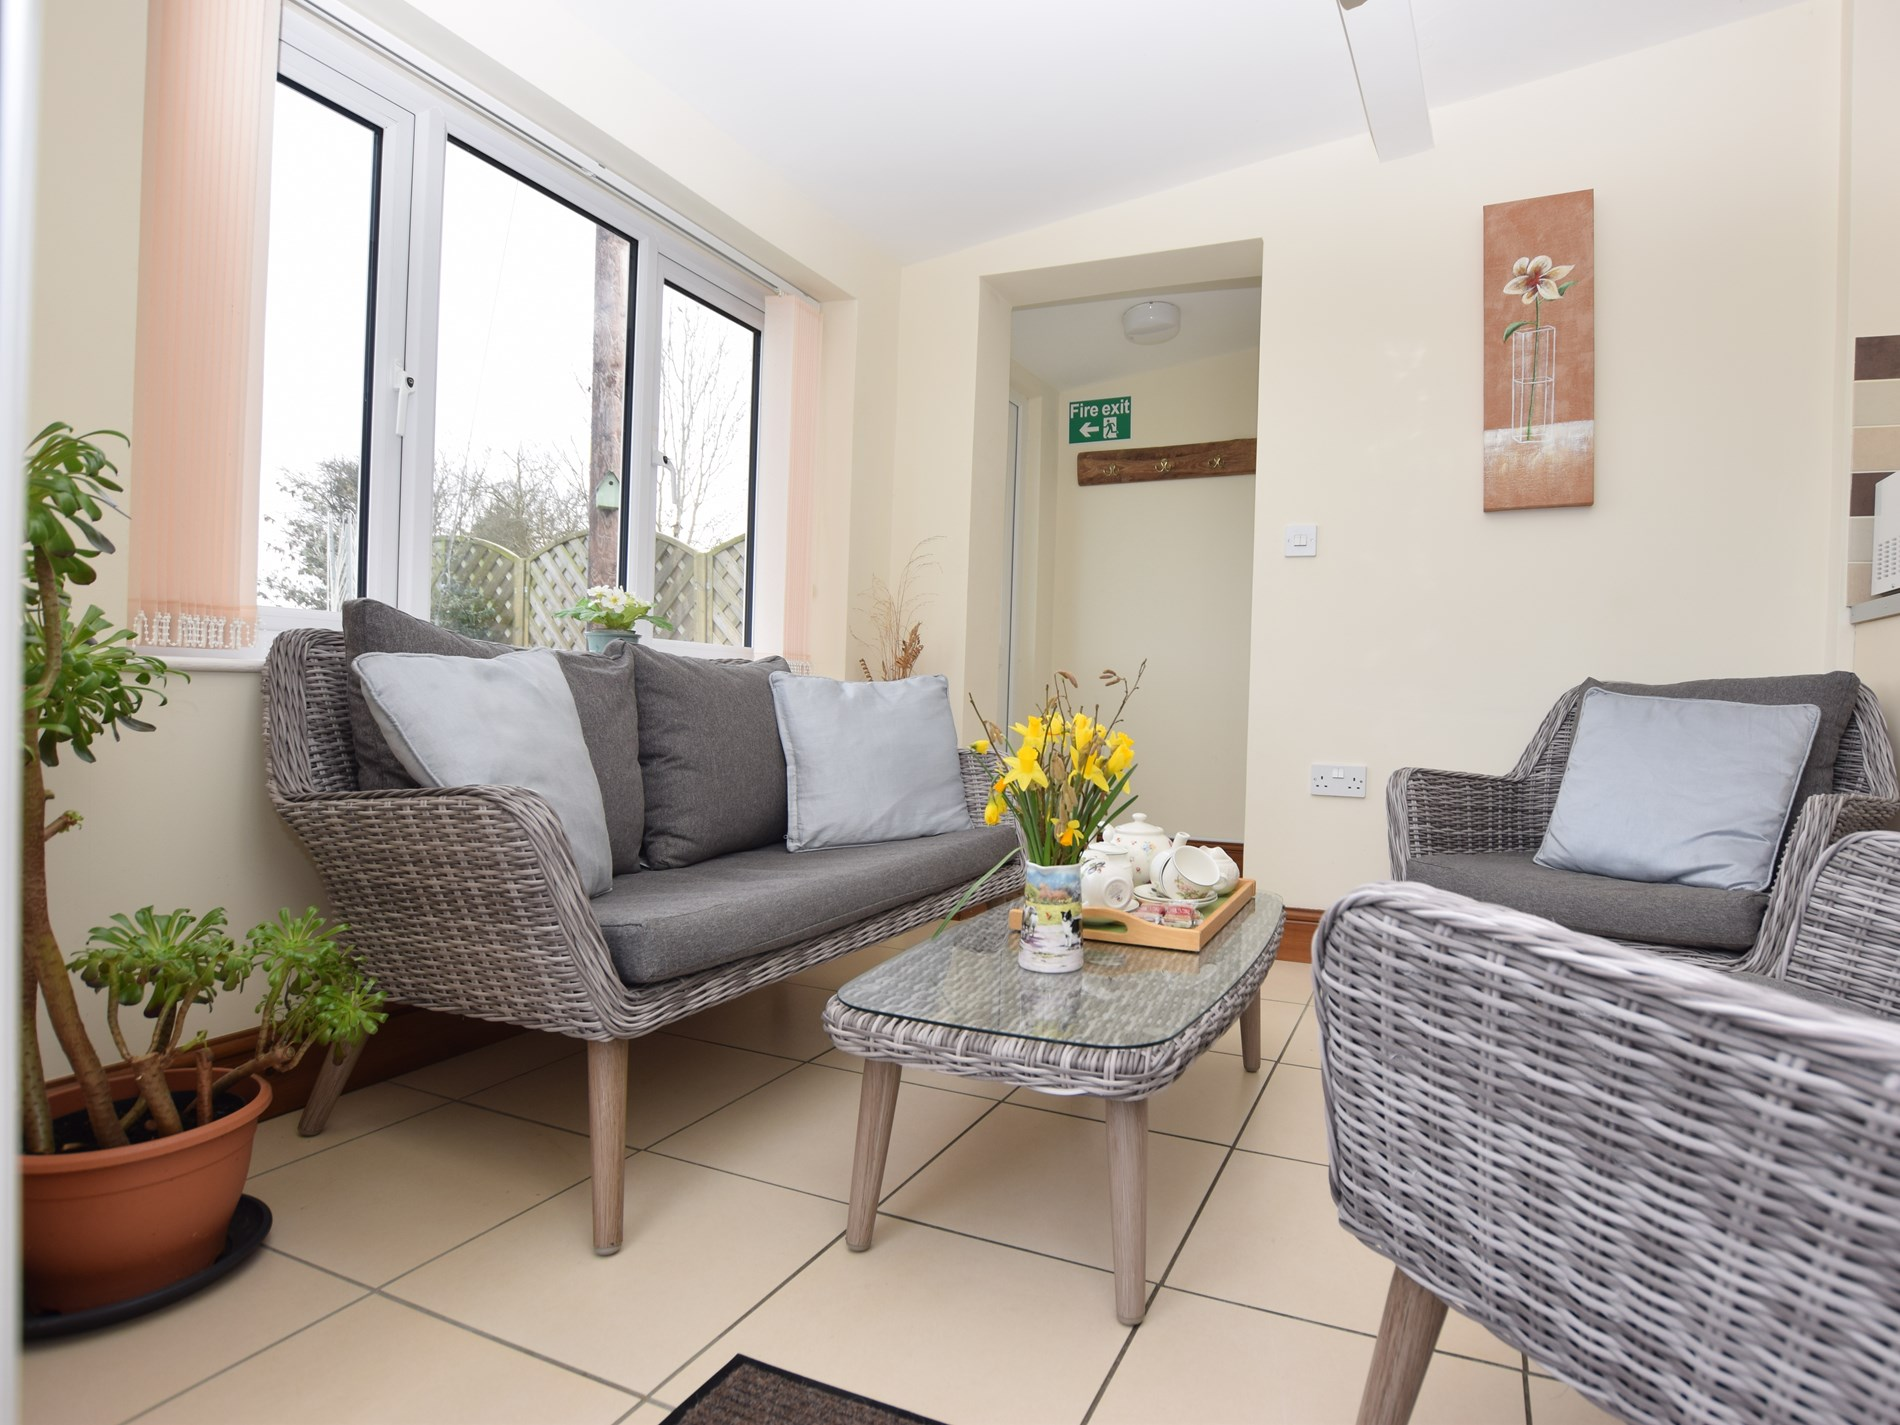 3 Bedroom Cottage in West Wales, Pembrokeshire and the South